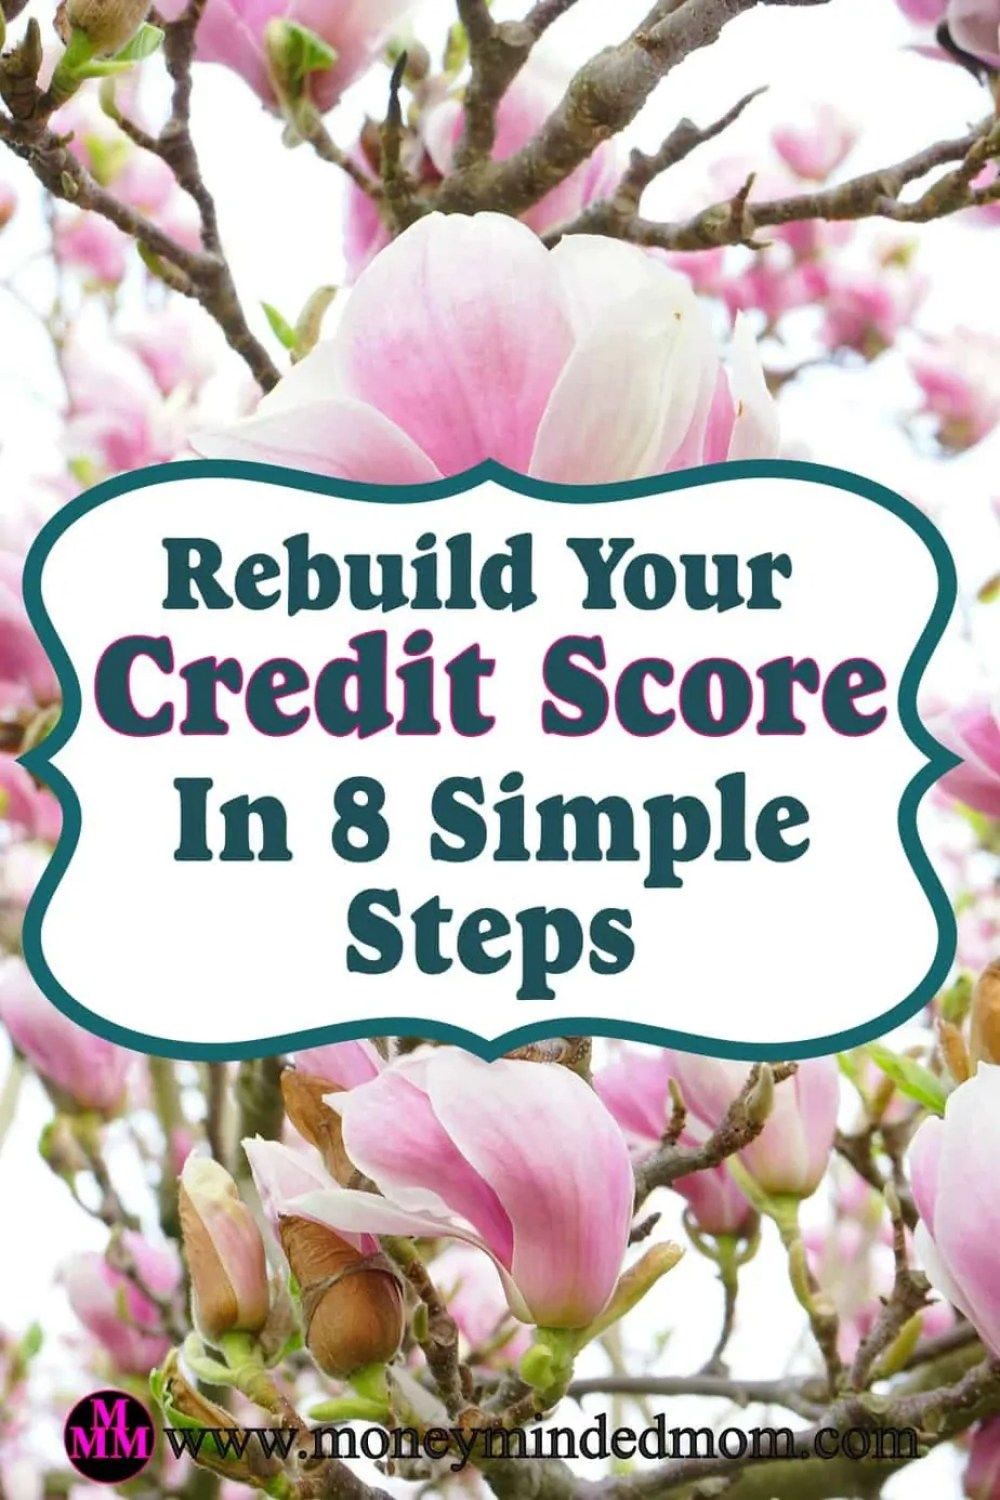 Rebuild Your Credit Score In 8 Simple Steps